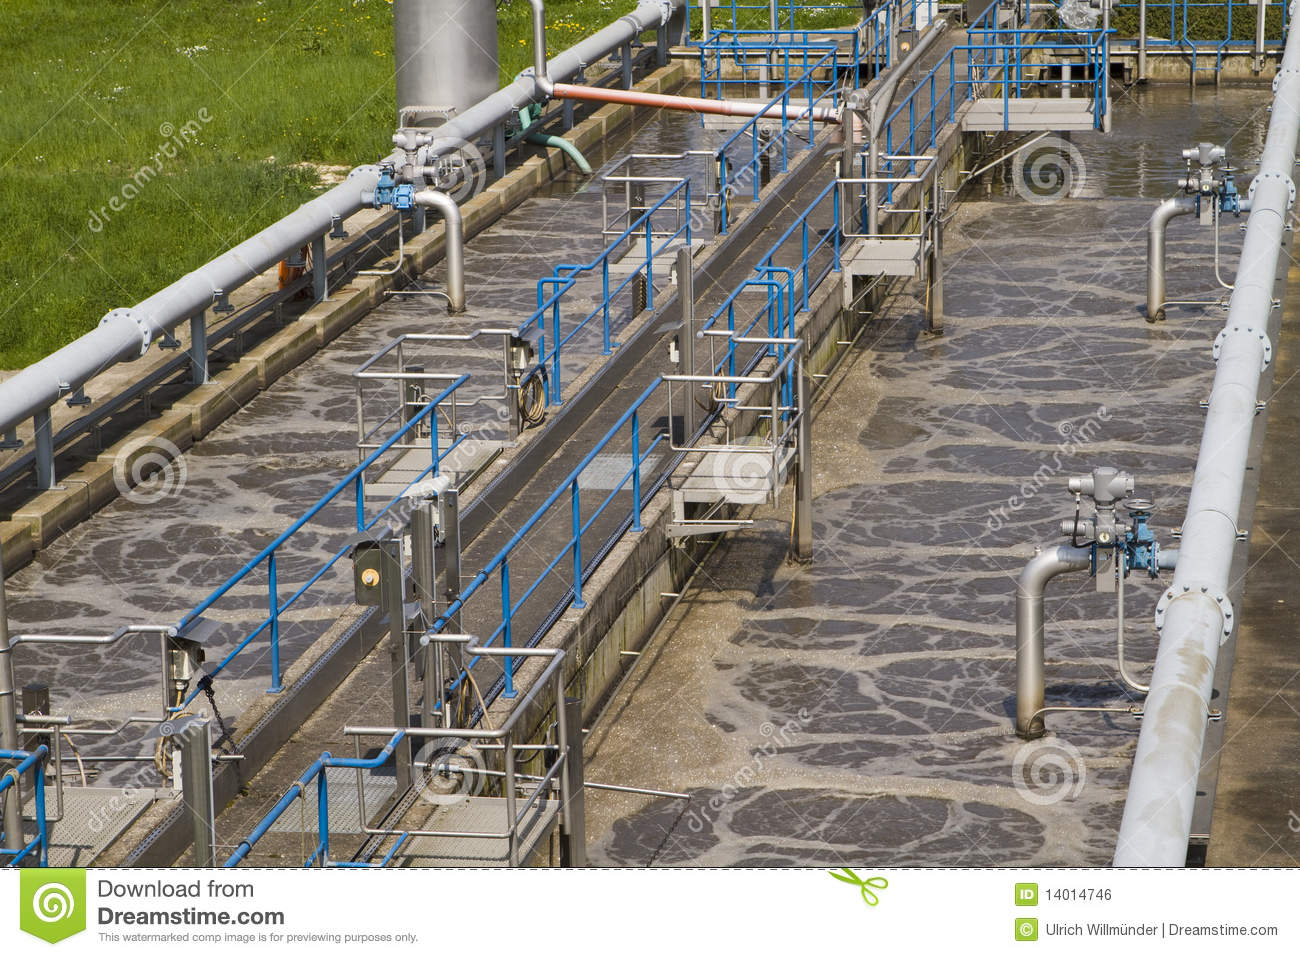 Small local waste water treatment facility